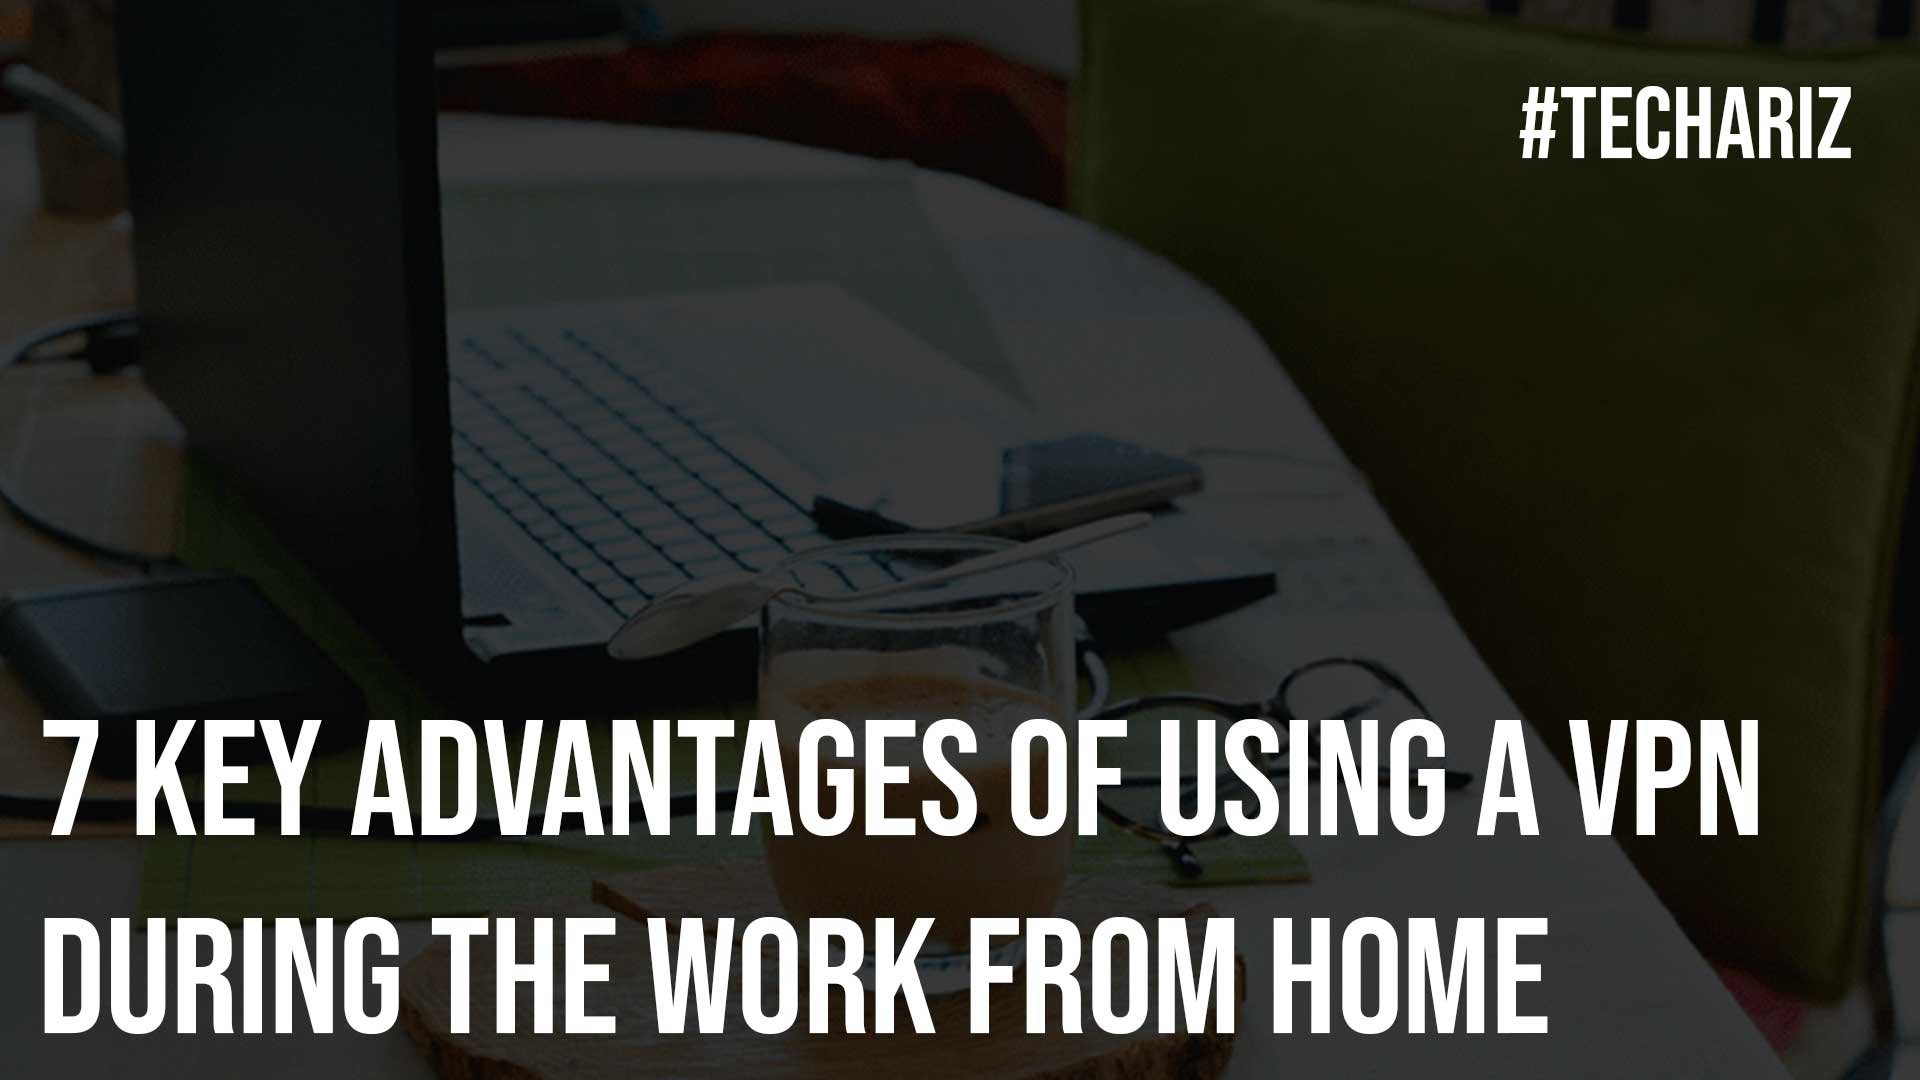 7 Key Advantages of Using a VPN during the Work from Home